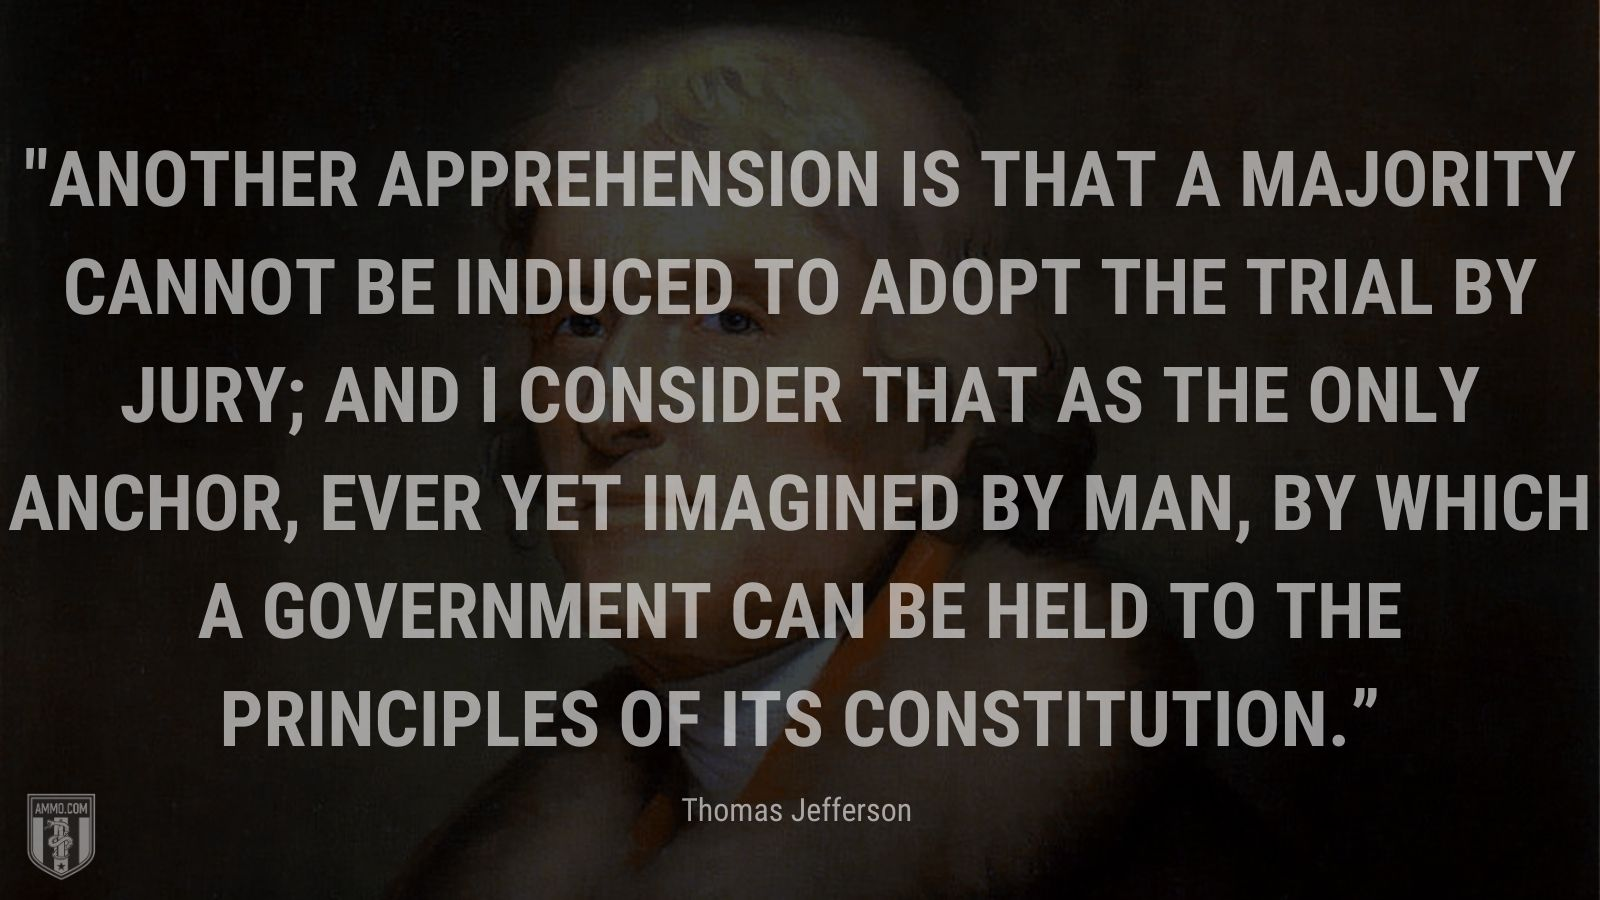 """""""Another apprehension is that a majority cannot be induced to adopt the trial by jury; and I consider that as the only anchor, ever yet imagined by man, by which a government can be held to the principles of its constitution."""" - Thomas Jefferson"""